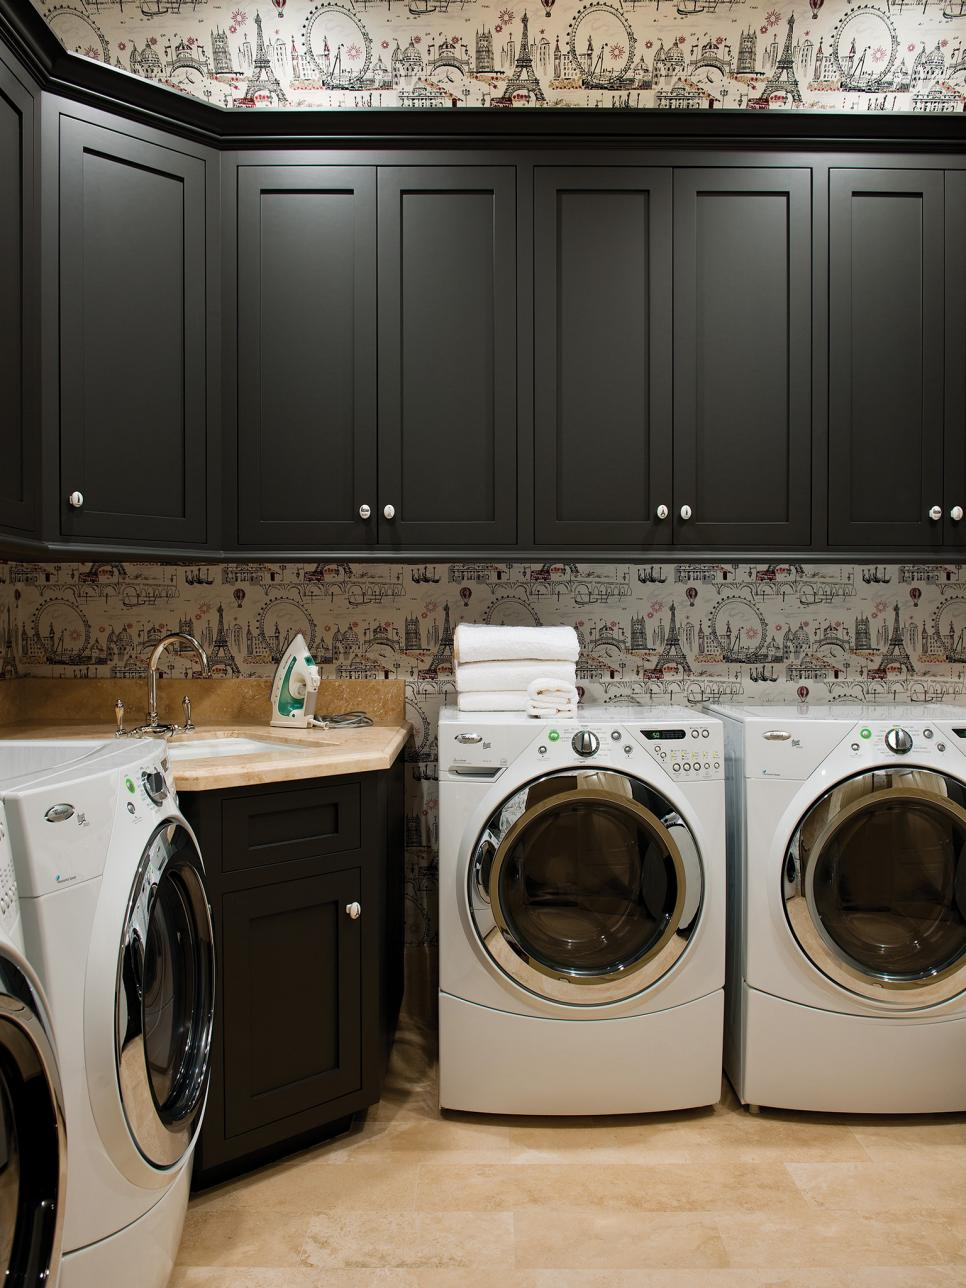 Decor and storage tips for basement laundry rooms hgtv - Laundry room design ideas ...